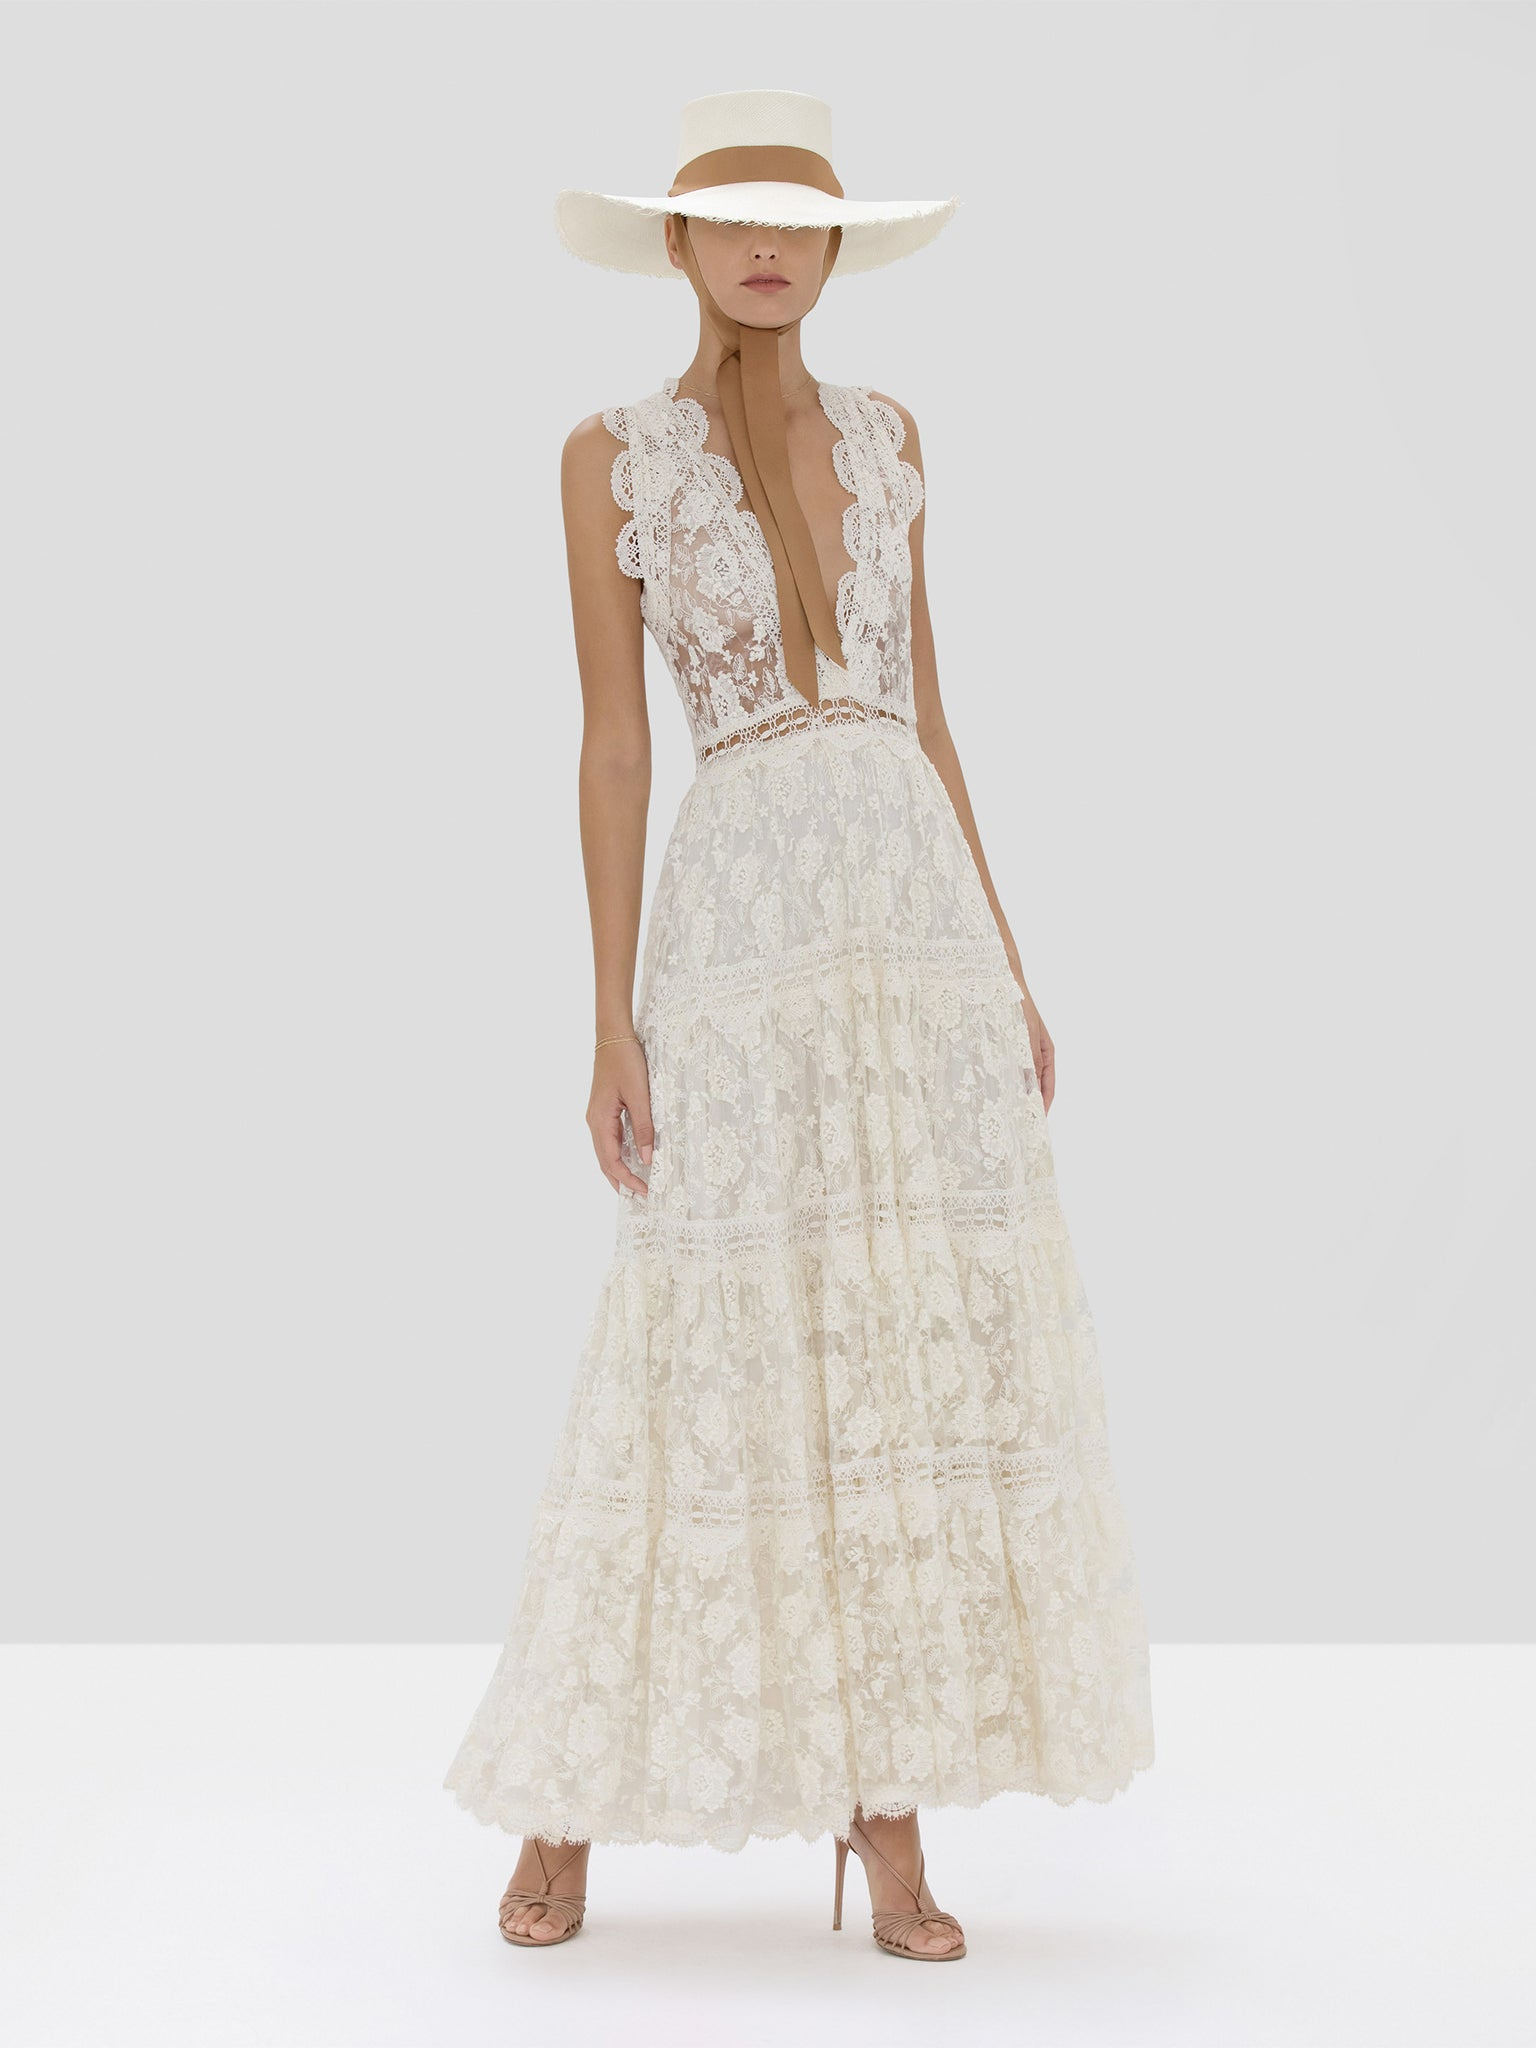 Alexis Havana Dress in Ivory from Spring Summer 2020 Collection